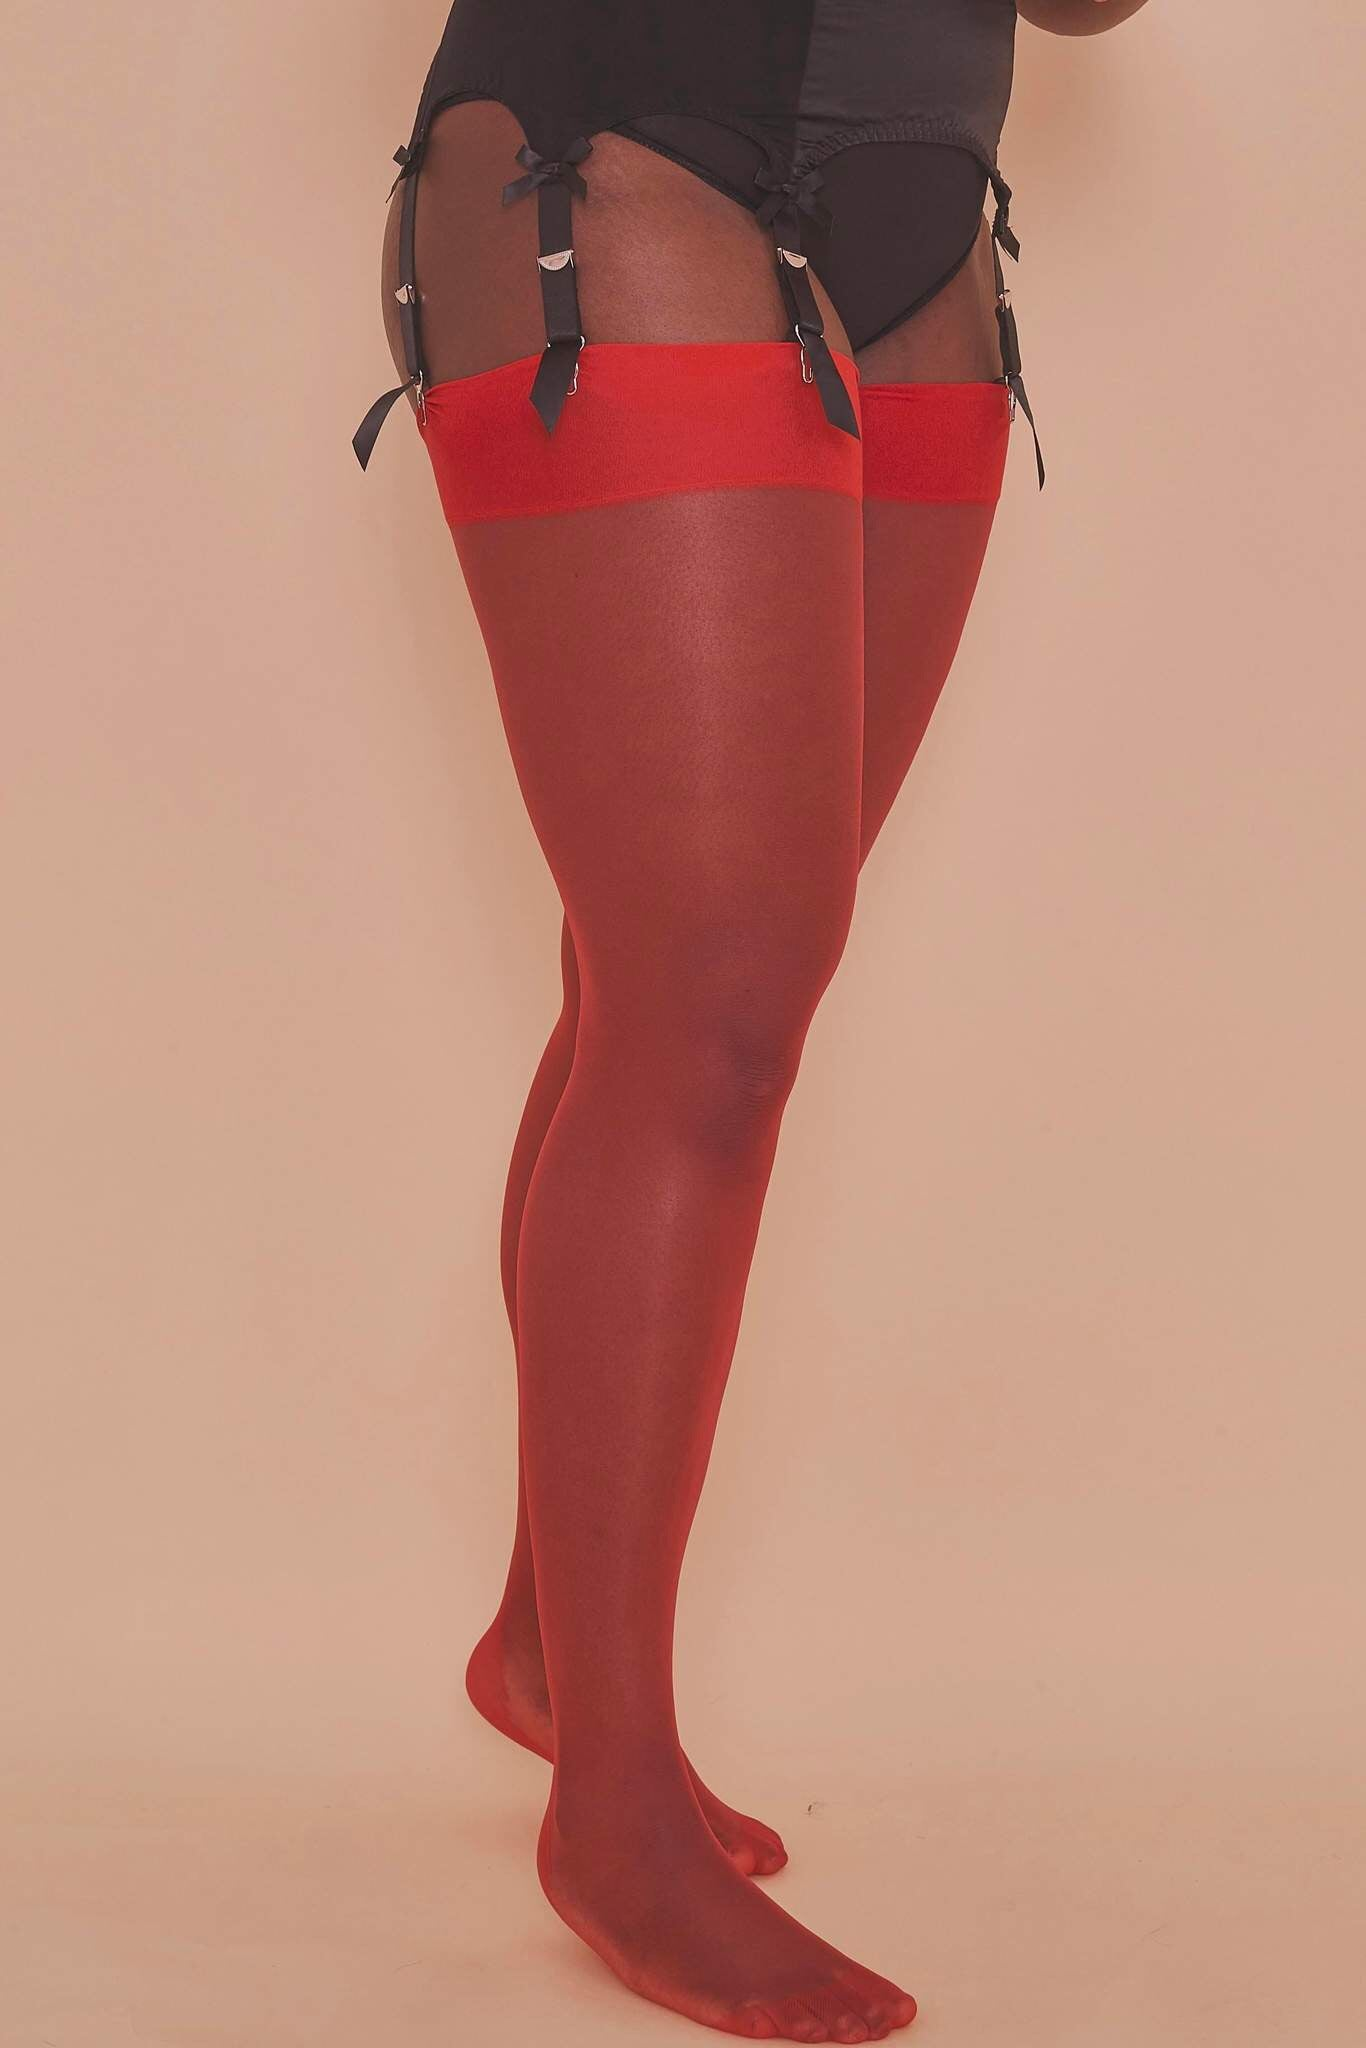 Lollipop Red Seamed Stockings - Sizes 4-18